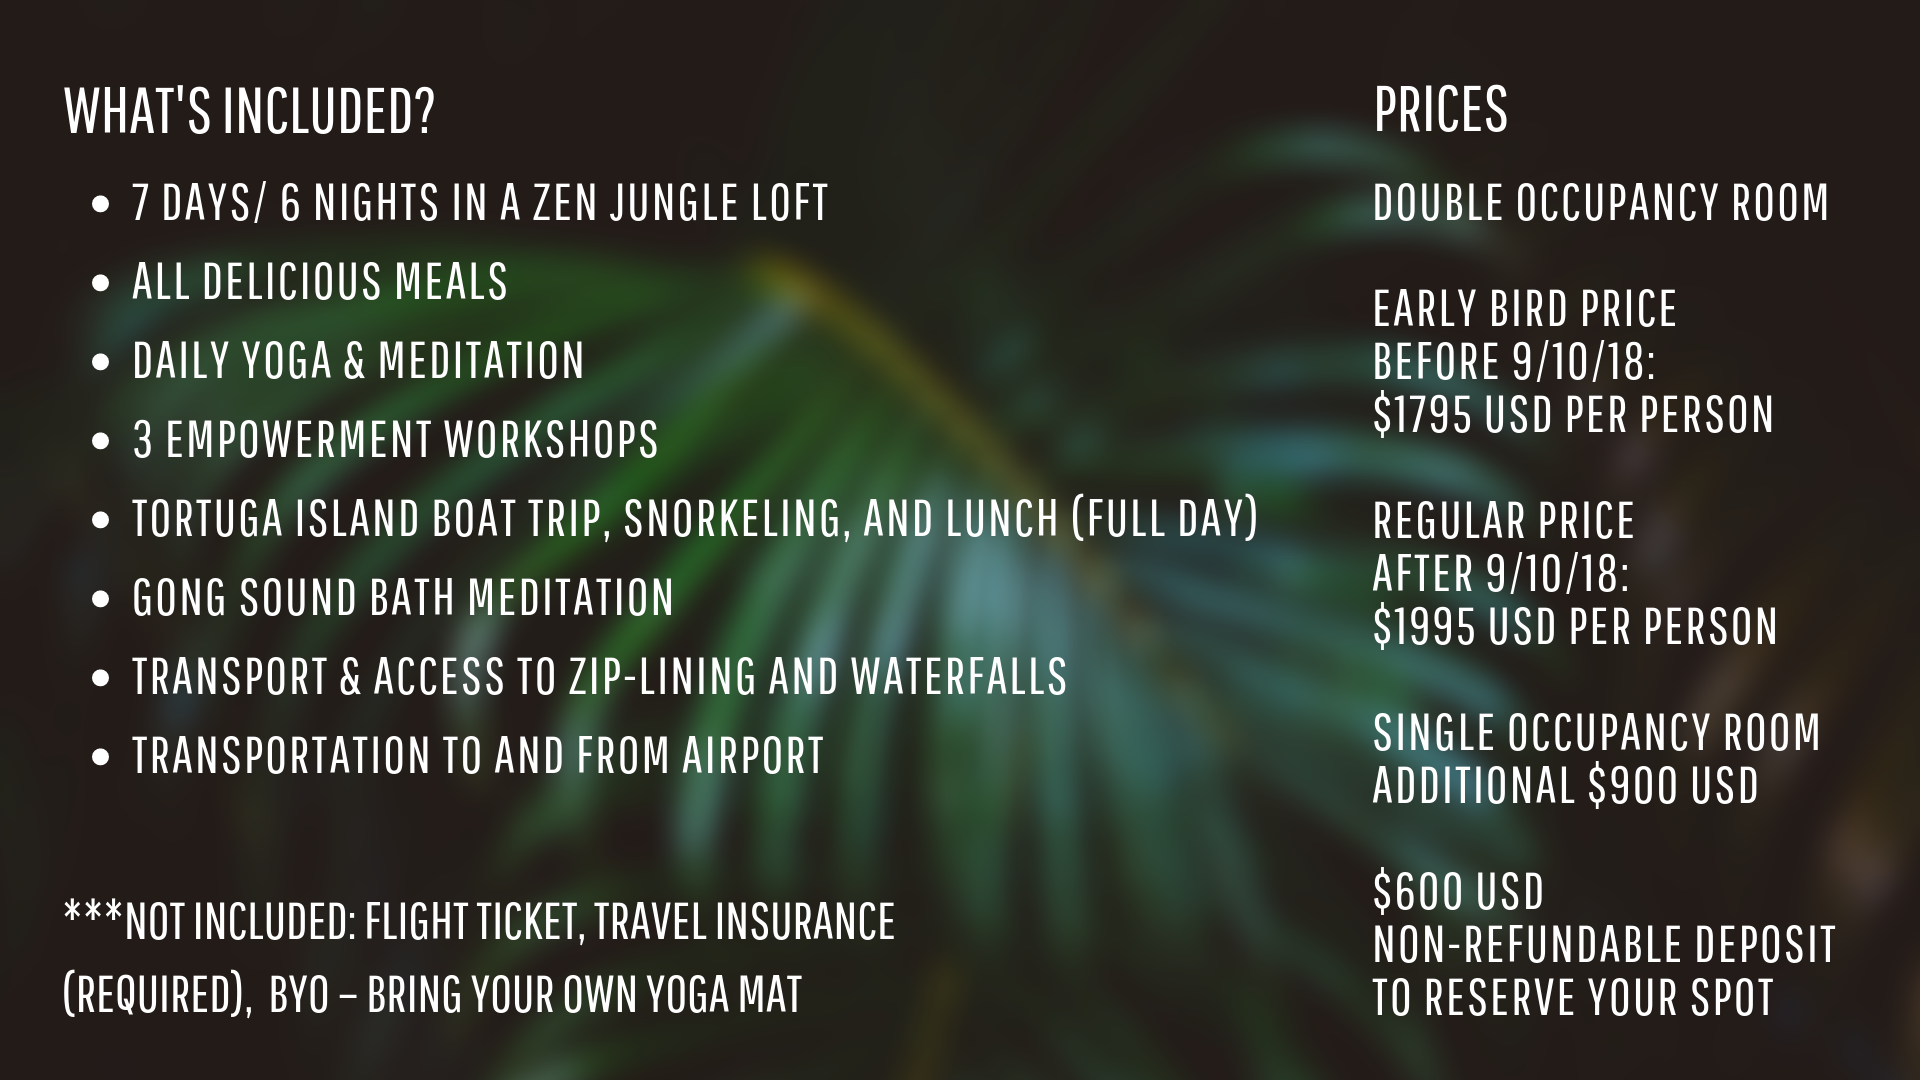 7 days%2F 6 nights in a zen Jungle LoftAll delicious meals (except 2-3 that will be eaten on the road)Daily Yoga & Meditation3 Empowerment workshopsTortuga Island Boat Trip, Snorkeling, and Lunch (full day)Gong Sound B (7).png